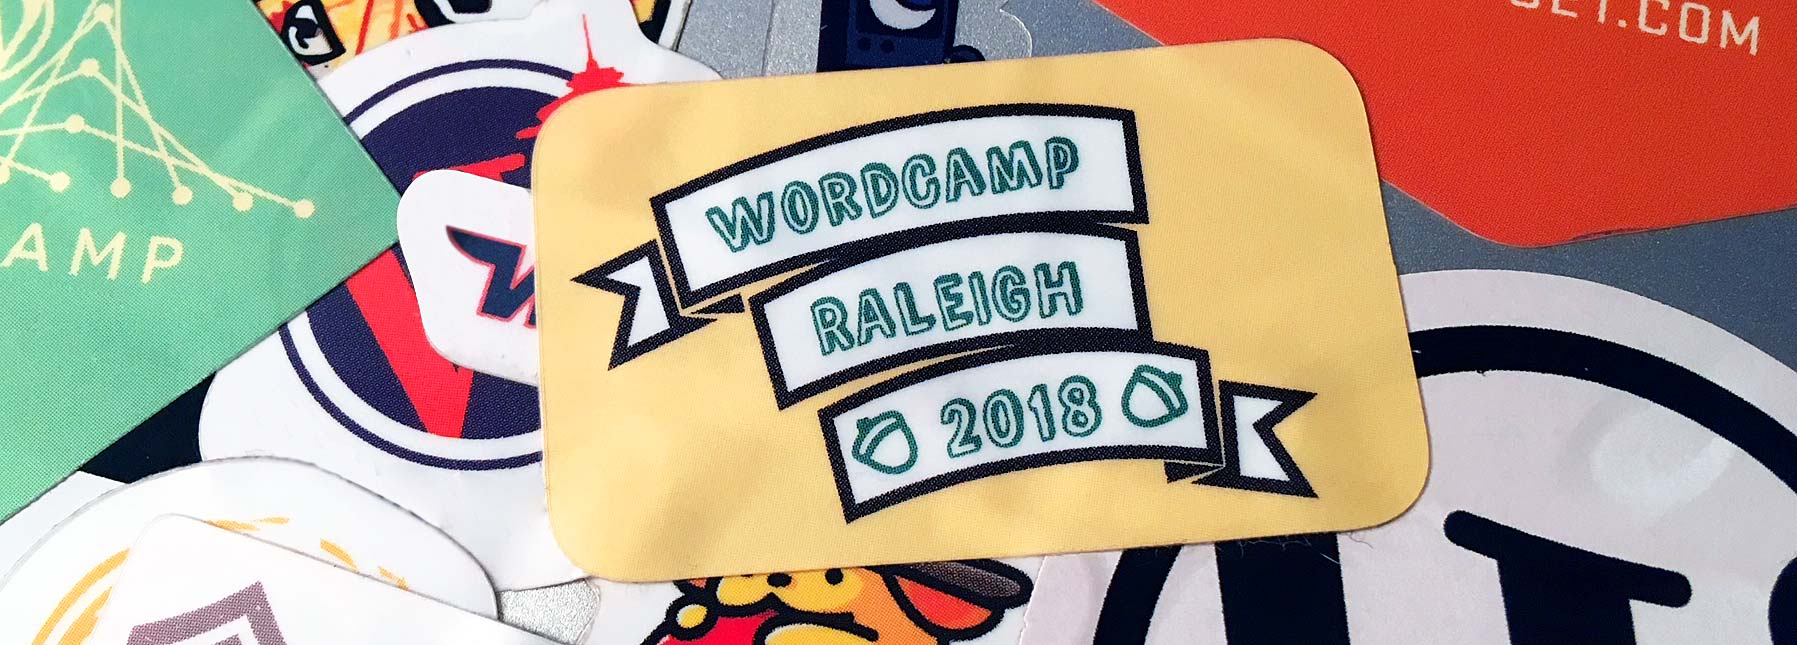 WordCamp Raleigh 2018 stickers